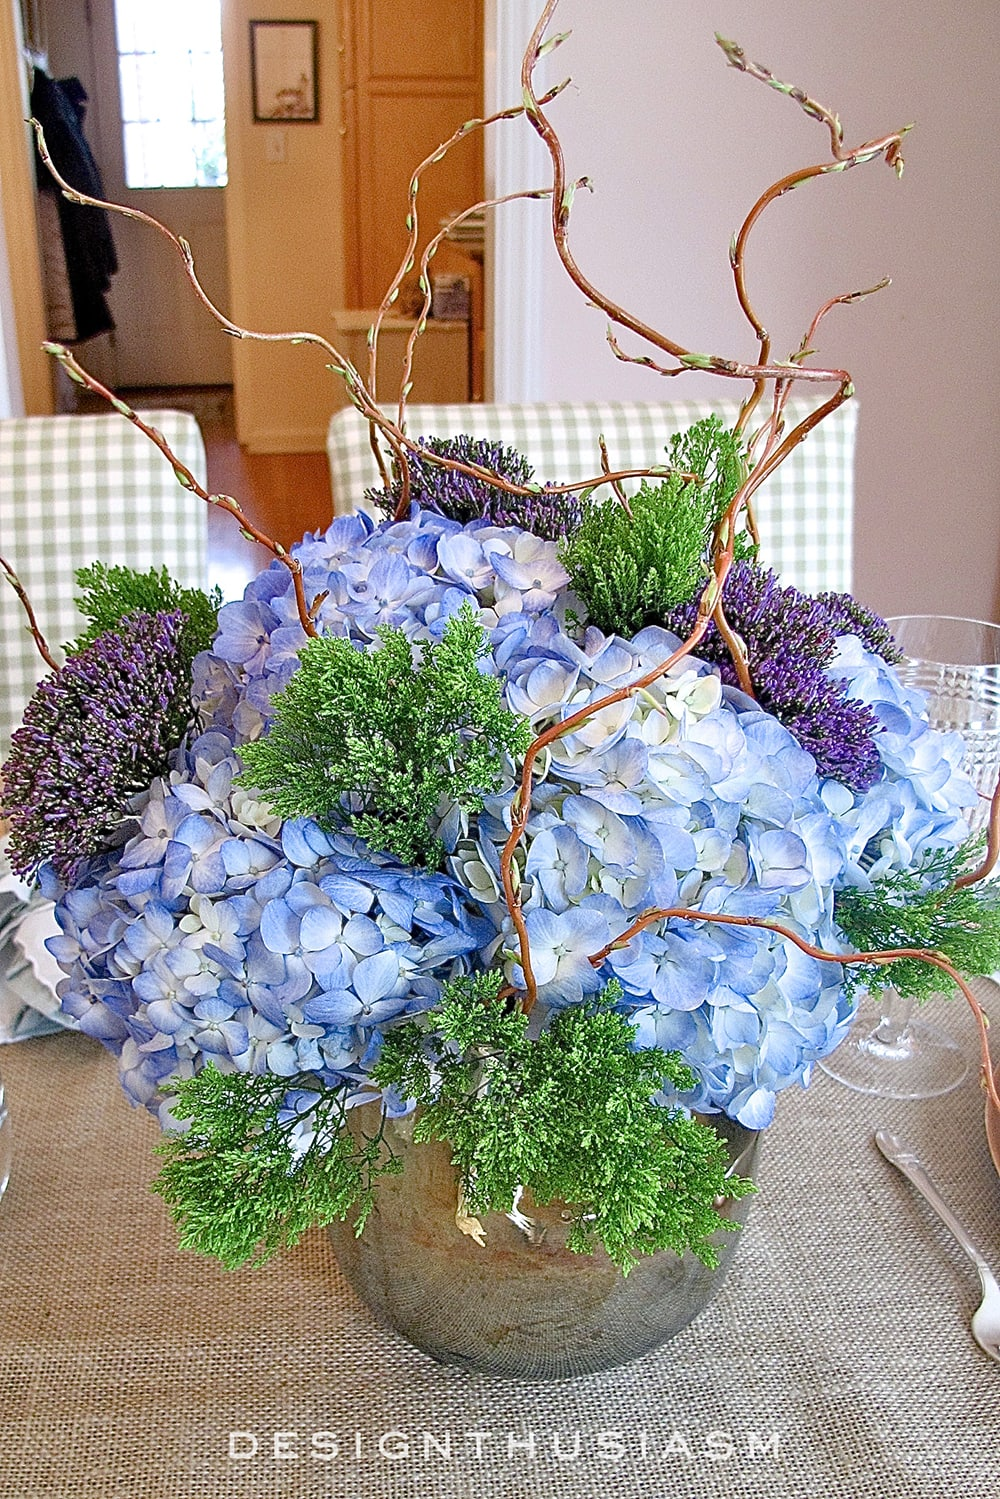 Table Setting In French French Table Setting Arrangement